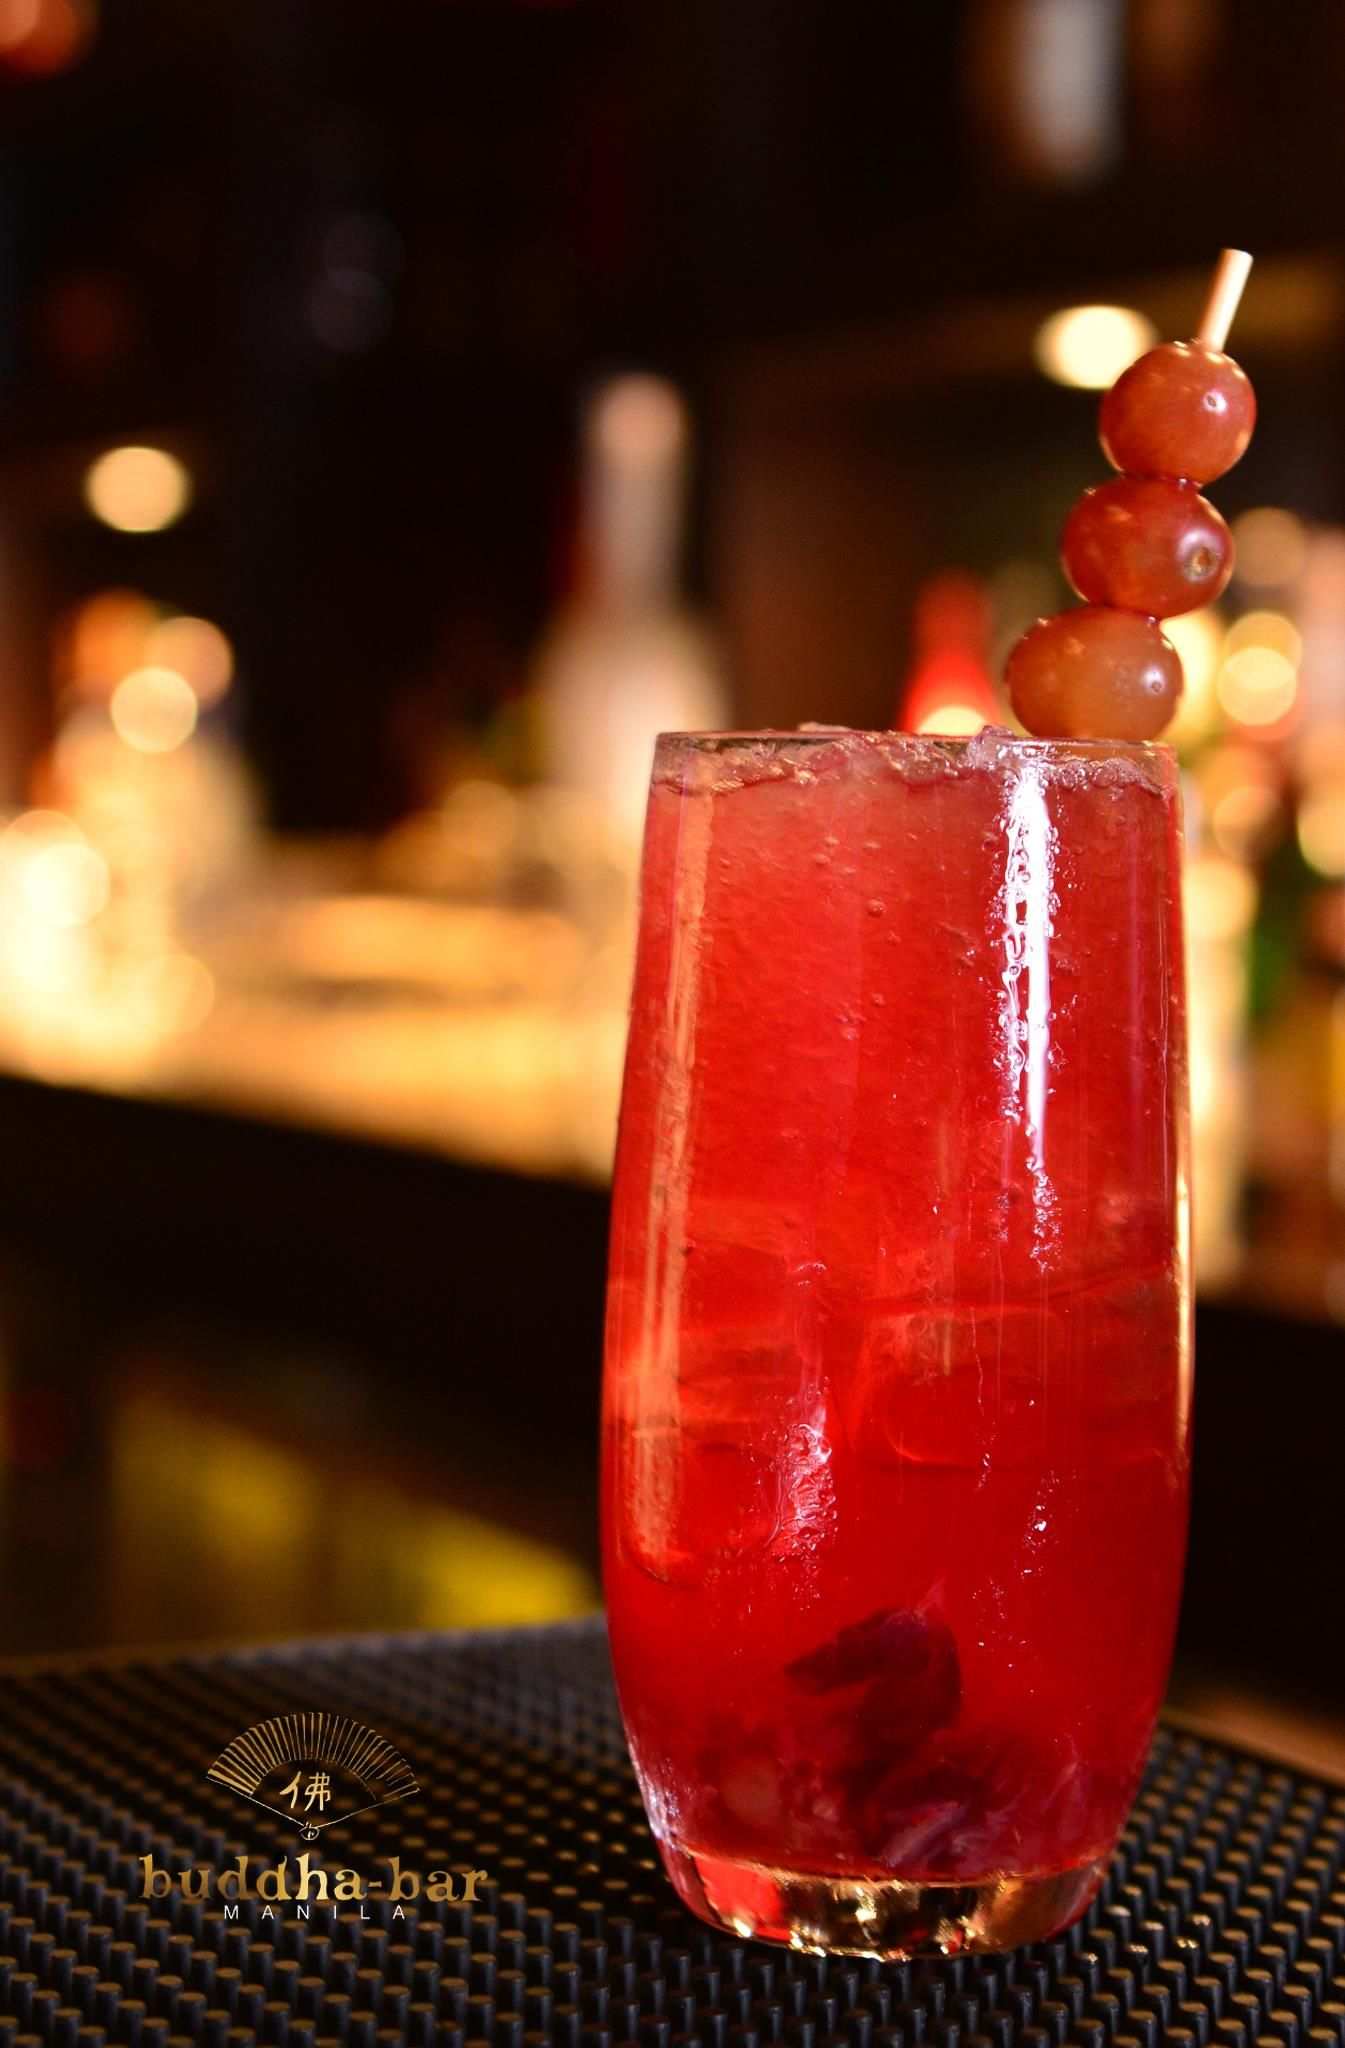 The Heart Of Darkness A Blend Of Red Grapes Cognac And Red Port A Buddha Bar Manila Exclusive Red Grapes Alcoholic Drinks Grapes